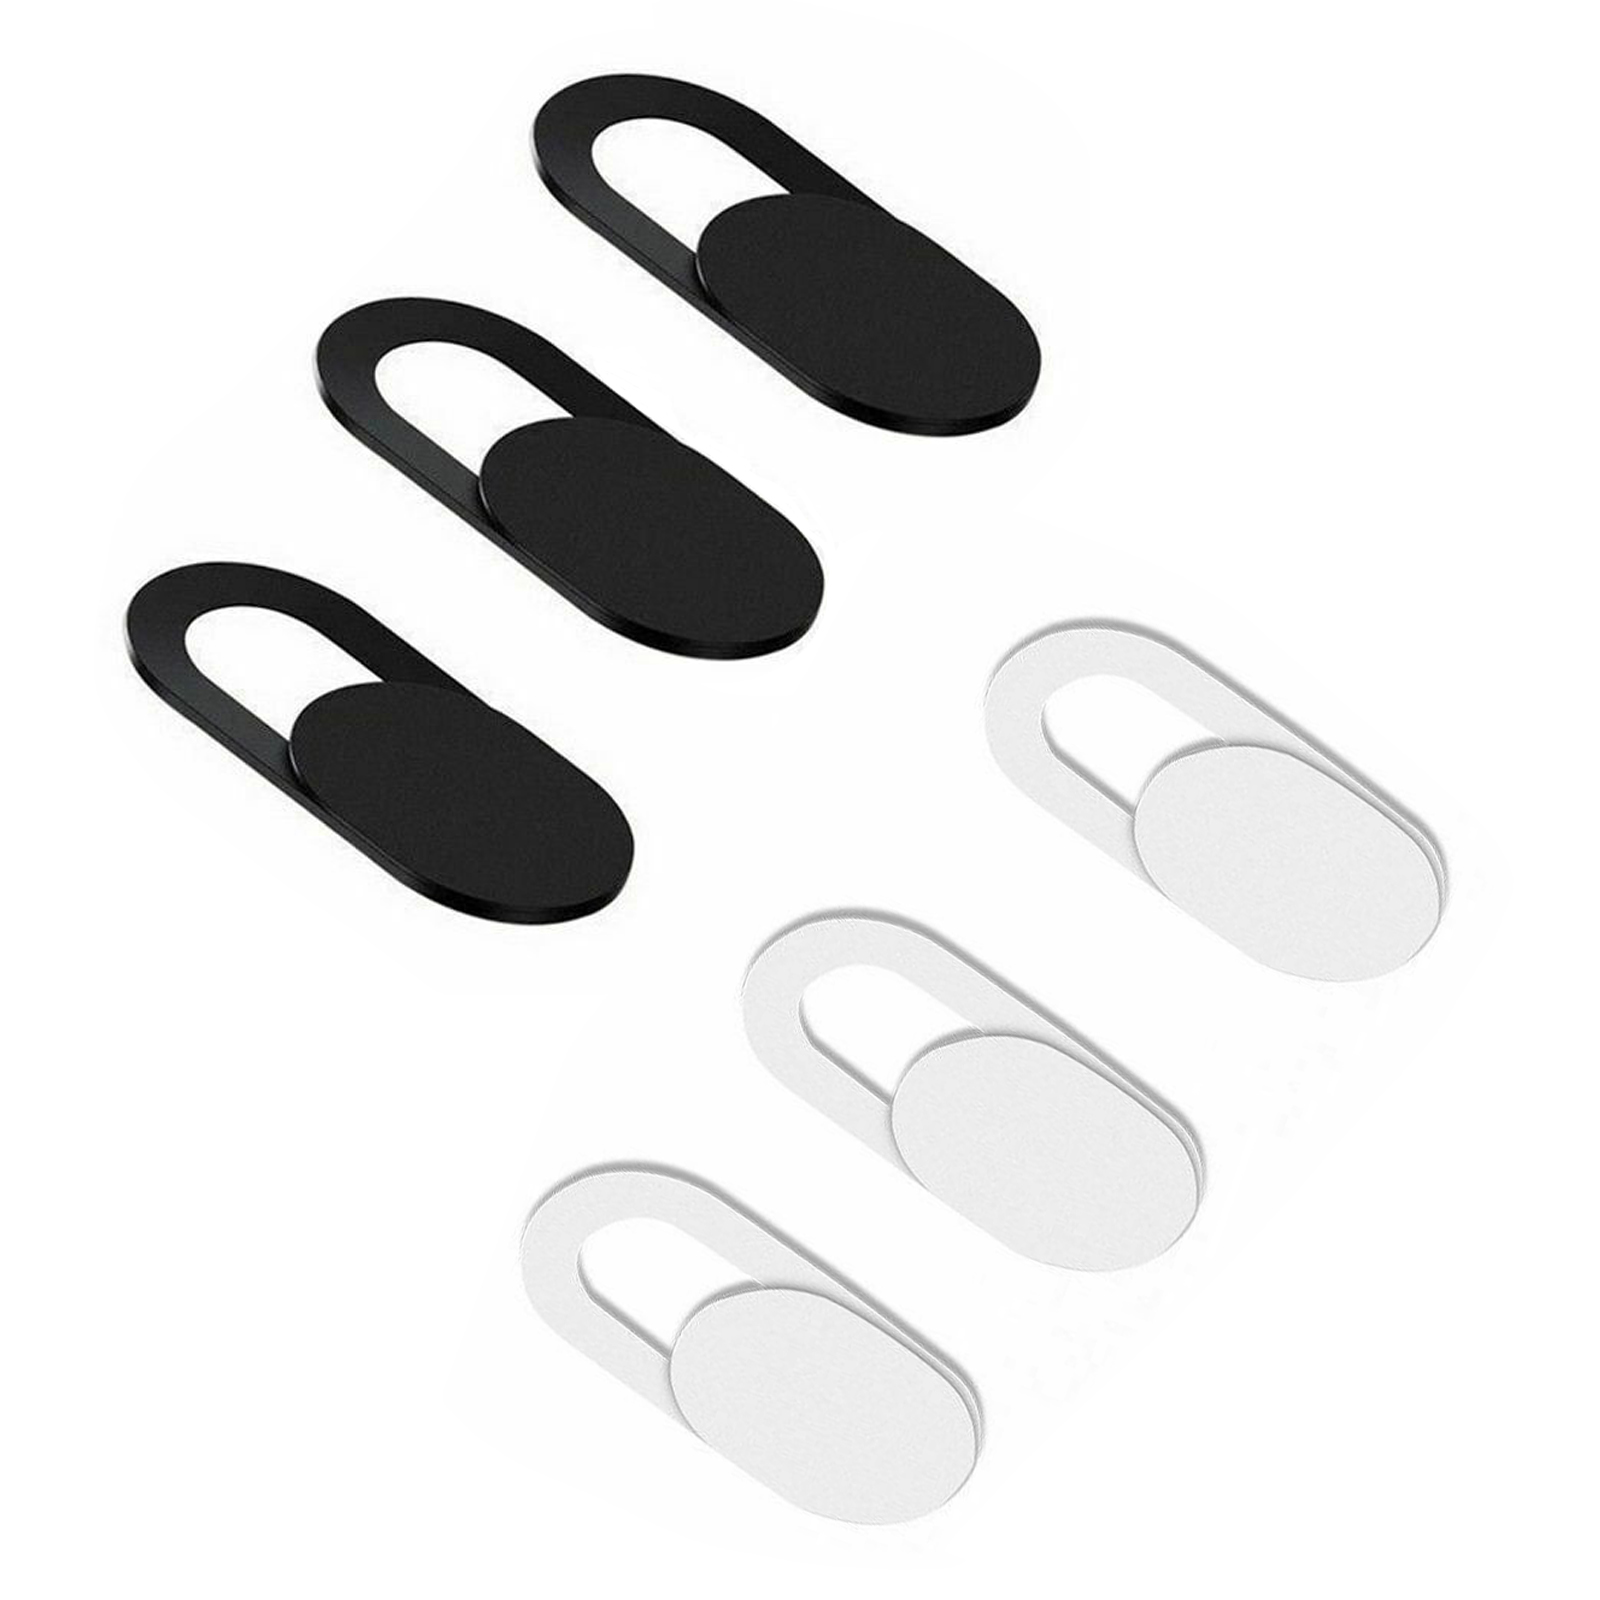 6x WebCam Shutter Privacy Slider Plastic Camera Cover Protector for Laptop Phone